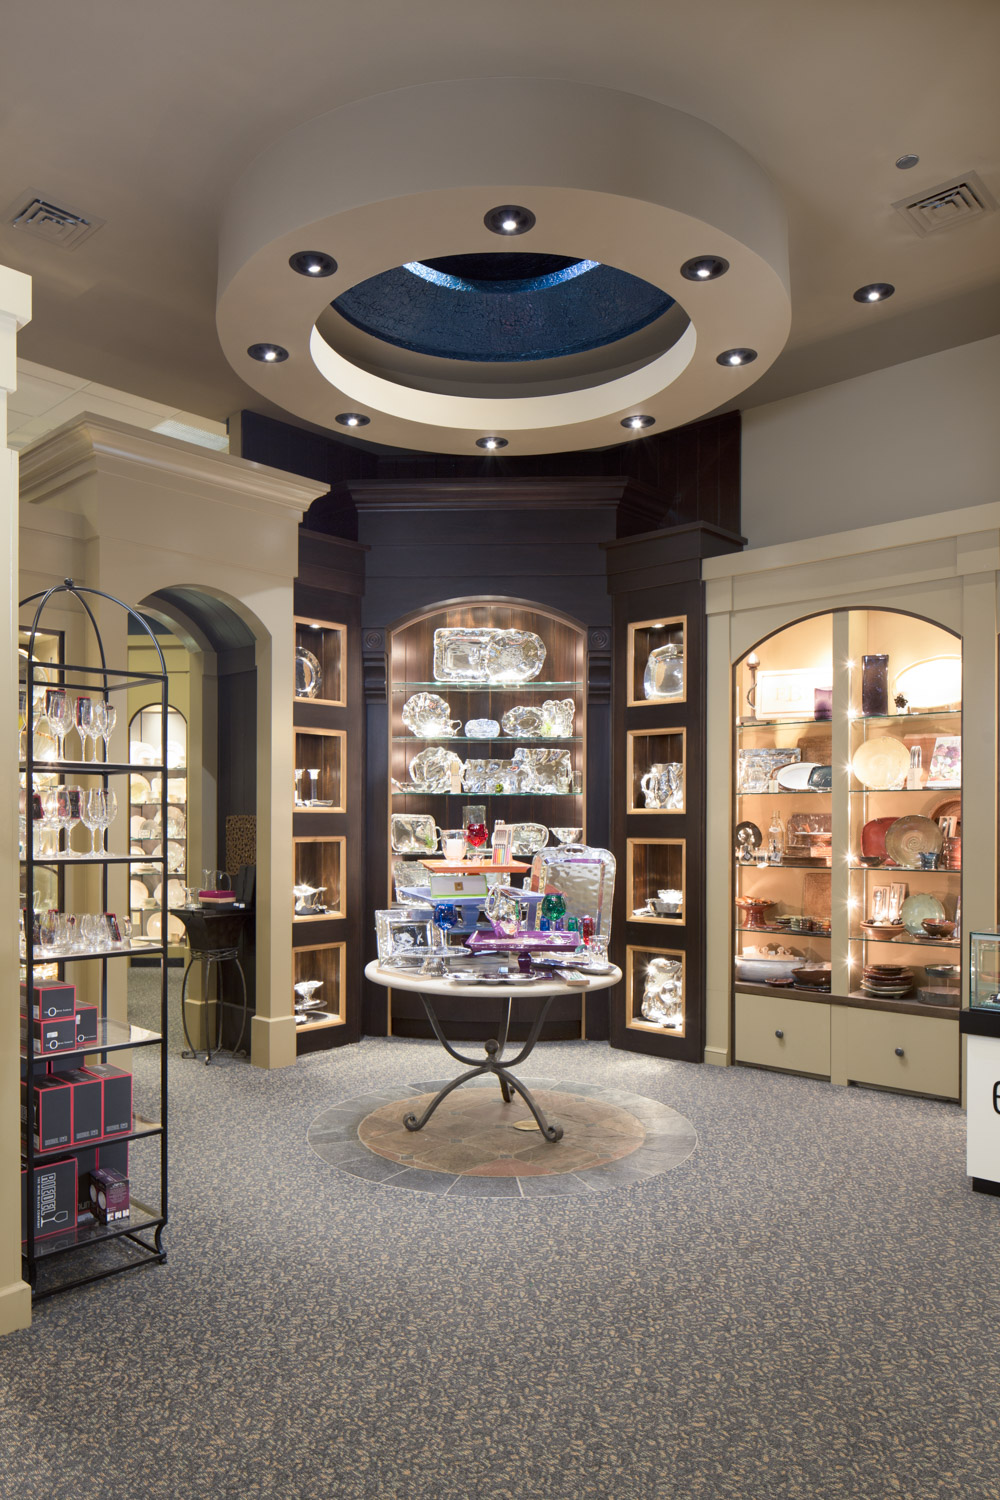 Brombergs - Birmingham AL Jewelry Store - Google Virtual Tour2518.jpg